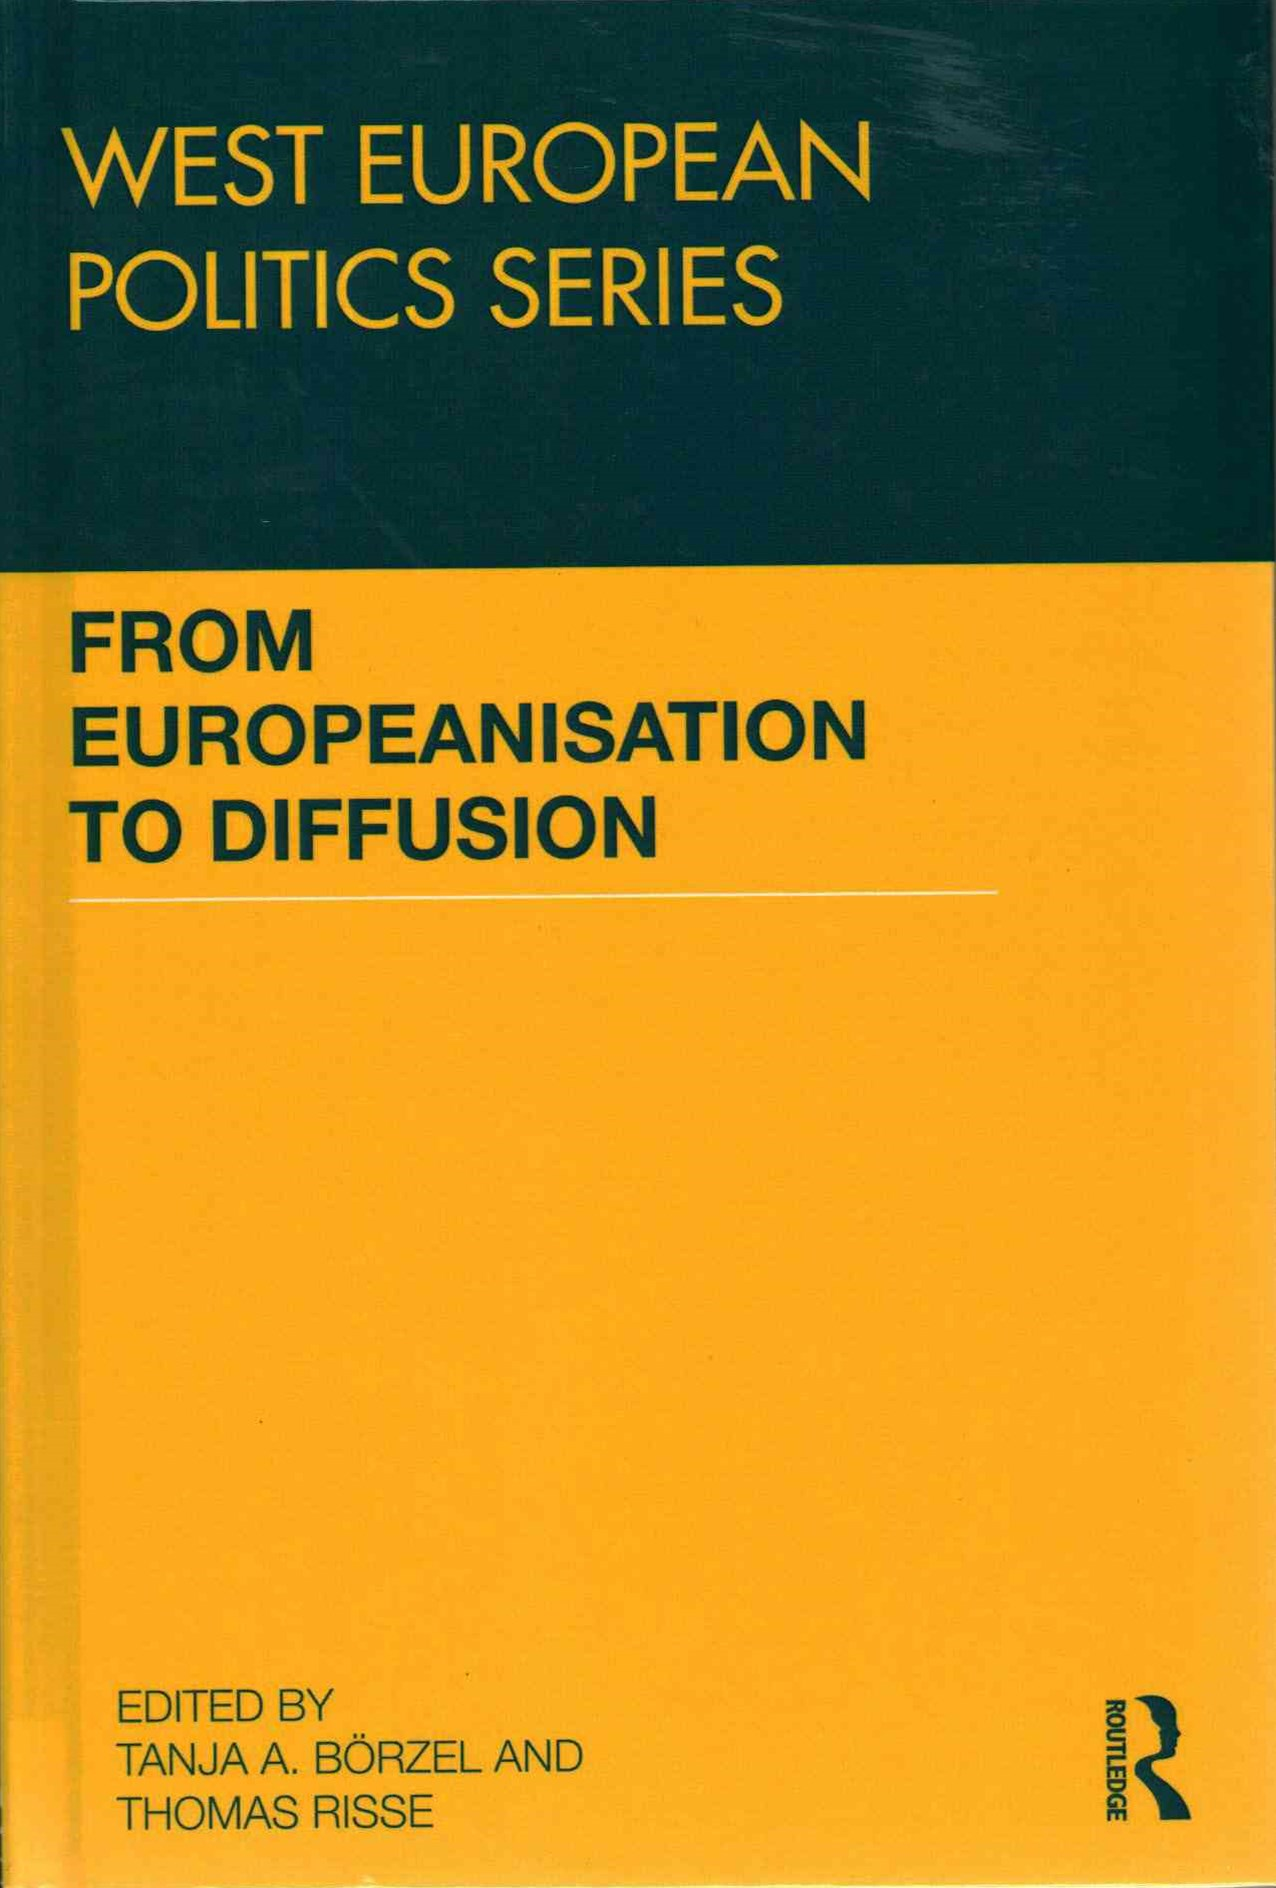 From Europeanization to Diffusion